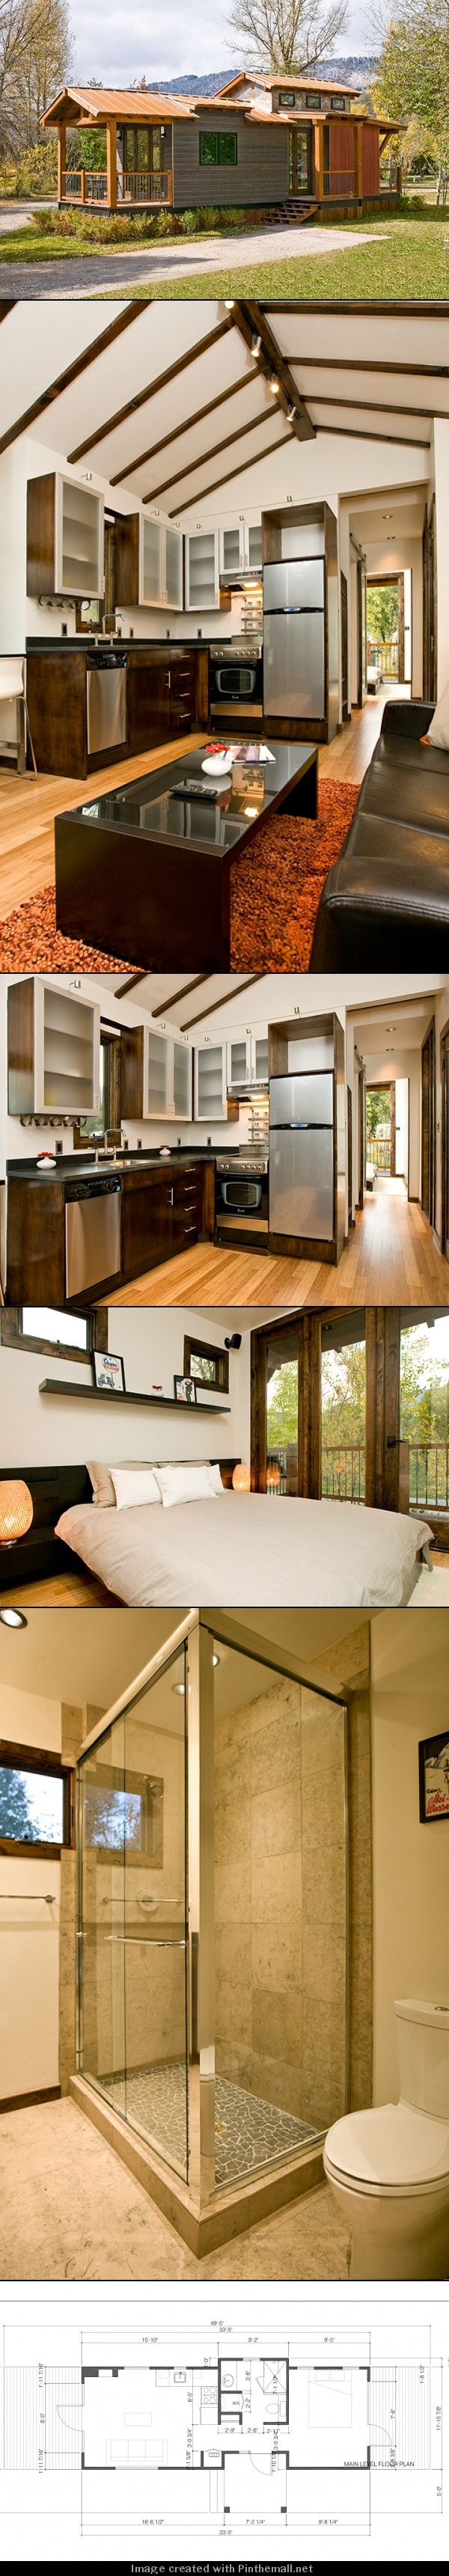 Stunning tiny house, movable if need be http://tinyhouseblog.com/park-model-homes/mountain-modern-park-model-rv. There is no link.